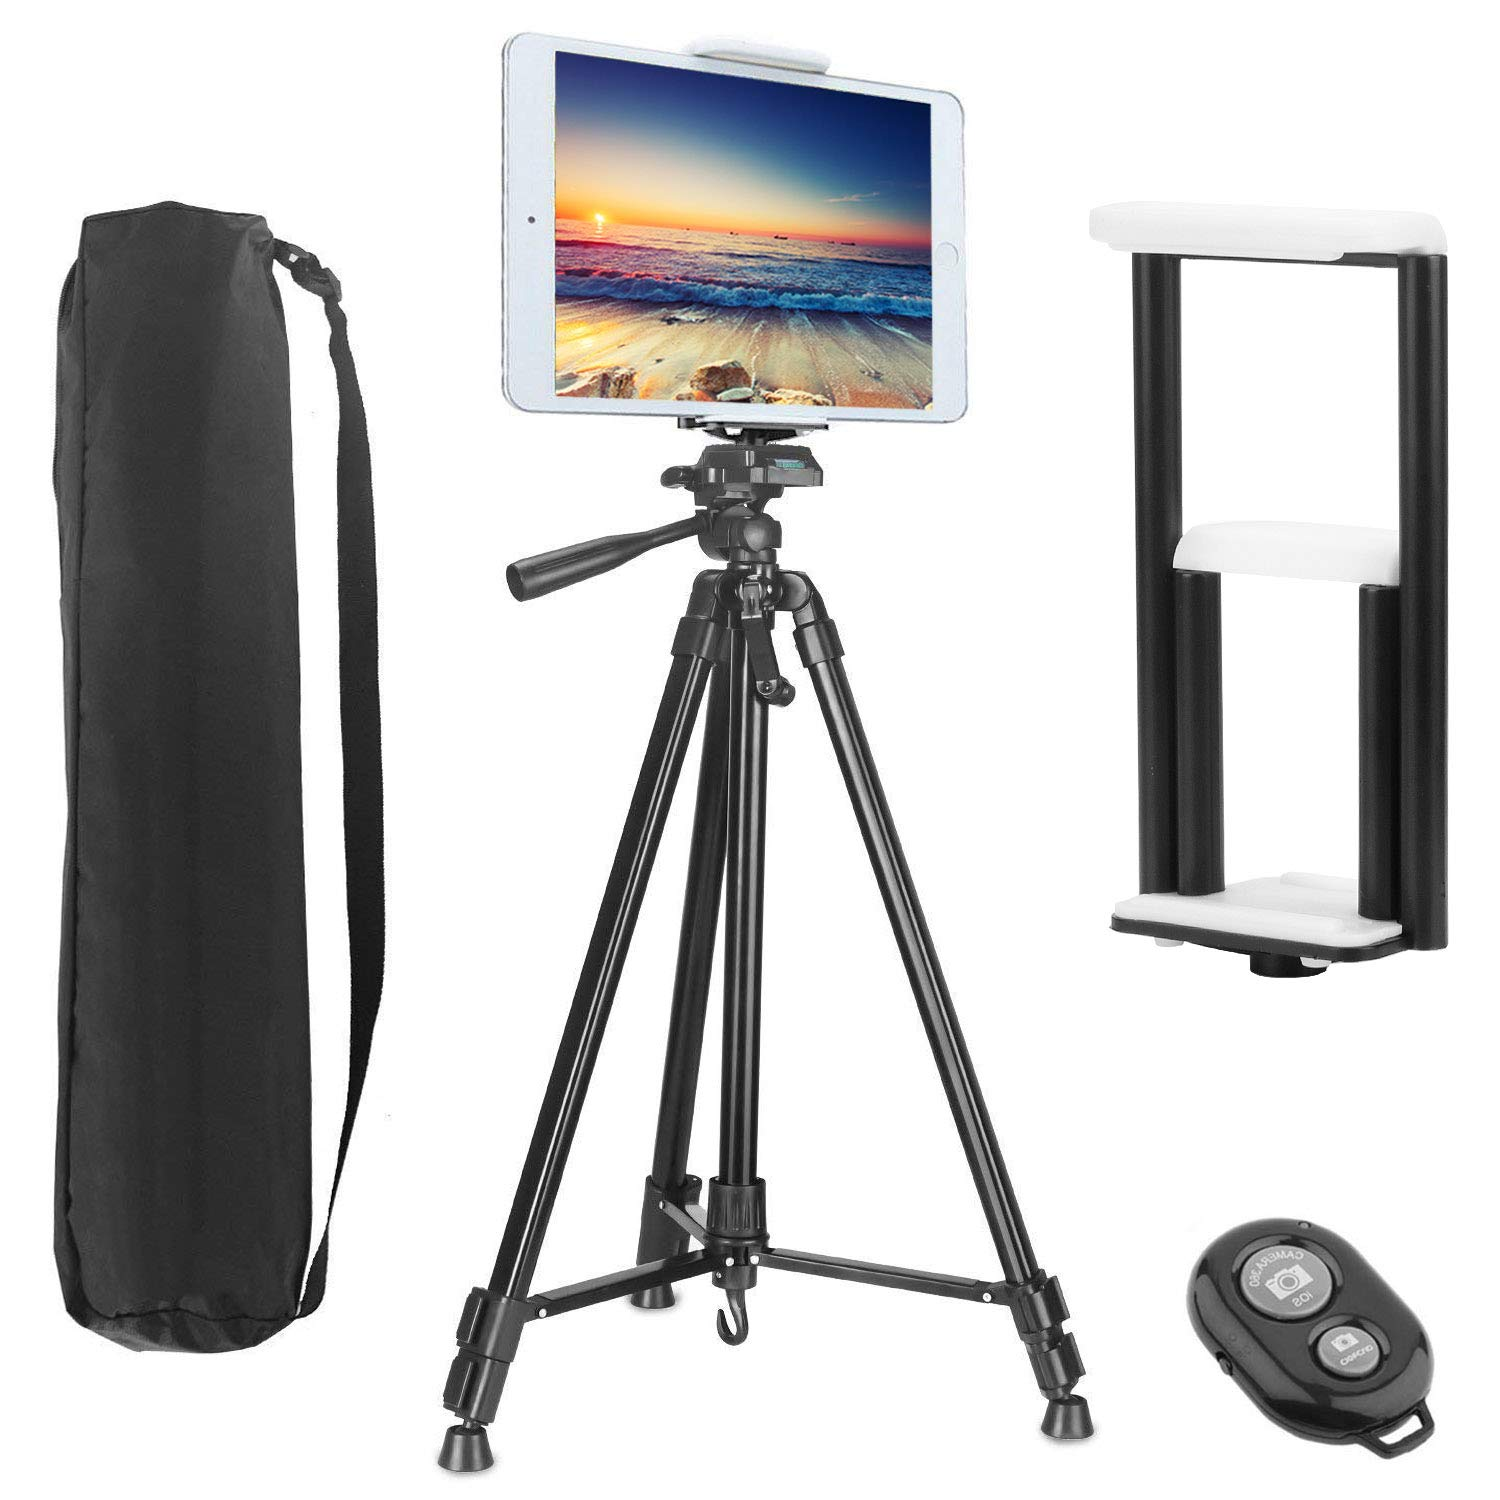 PEYOU Compatible for iPad iPhone Tripod,62 inch Lightweight Aluminum Phone Camera Tablet Tripod + Wireless Remote + 2 in 1 Mount Holder Compatible for Smartphone (Width 2-3.3''),Tablet (Width 4.3-7.2'')